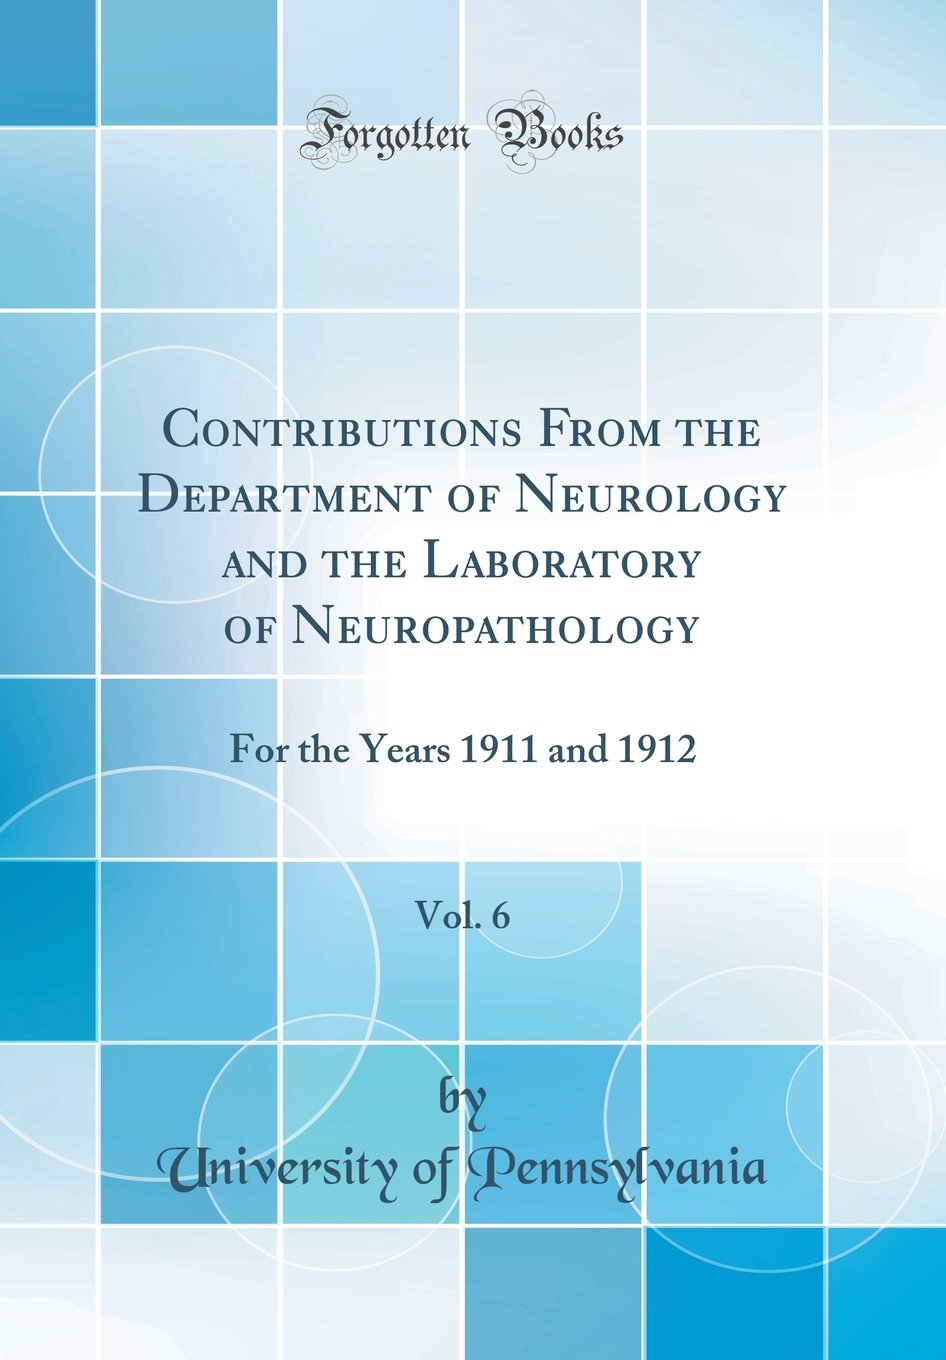 Contributions From the Department of Neurology and the Laboratory of Neuropathology, Vol. 6: For the Years 1911 and 1912 (Classic Reprint) pdf